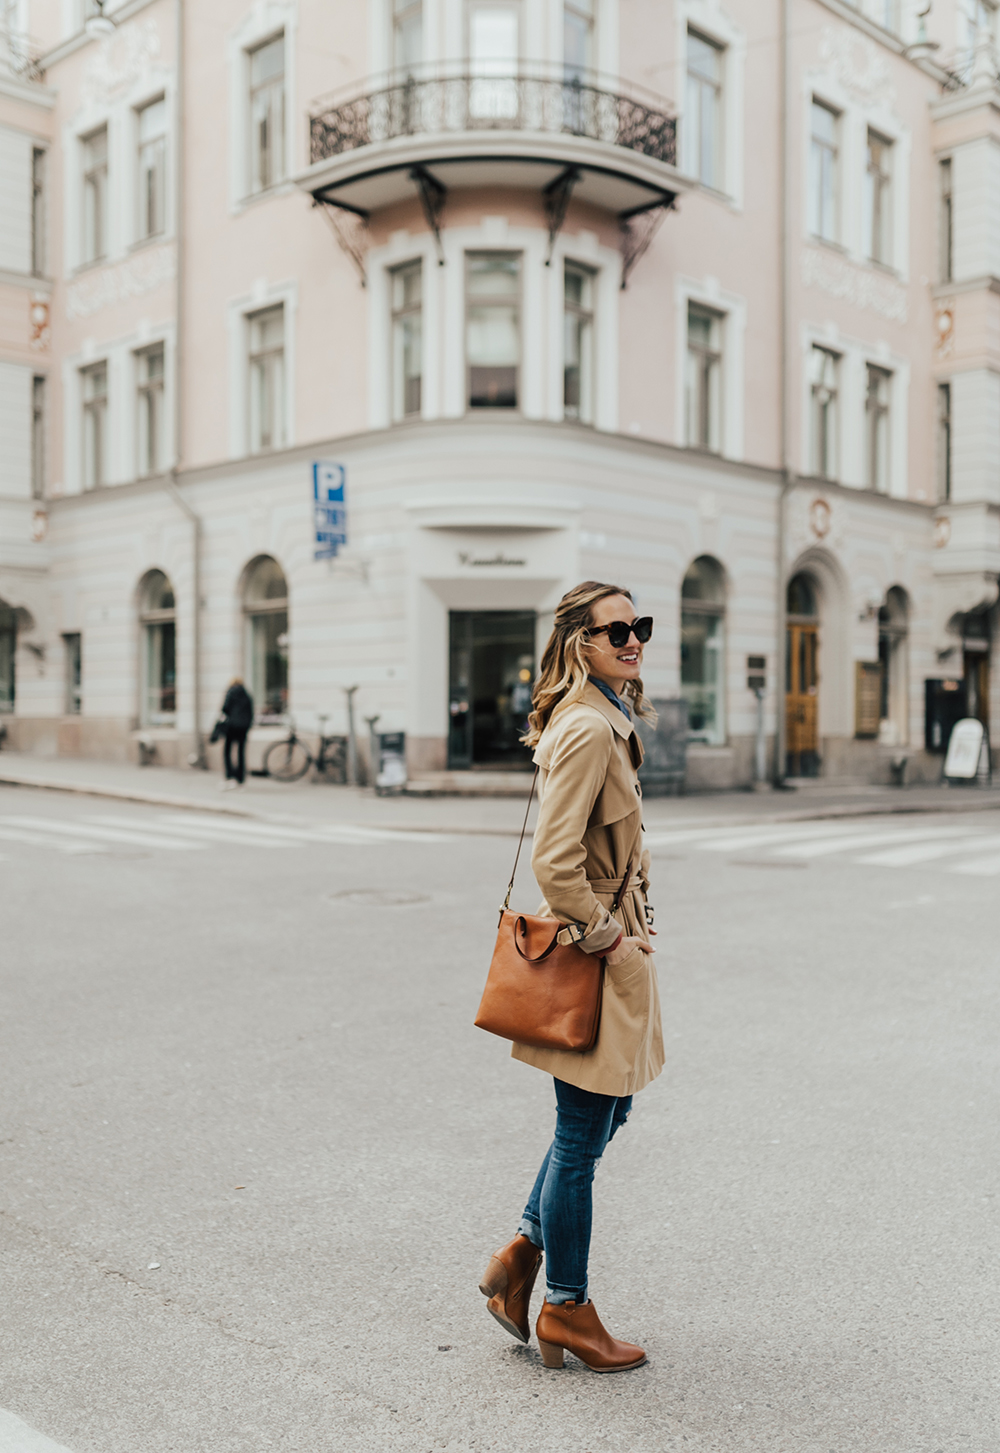 livvyland-blog-olivia-watson-helsinki-princess-cruise-scandinavia-baltic-sea-helsinki-finland-trench-coat-ankle-booties